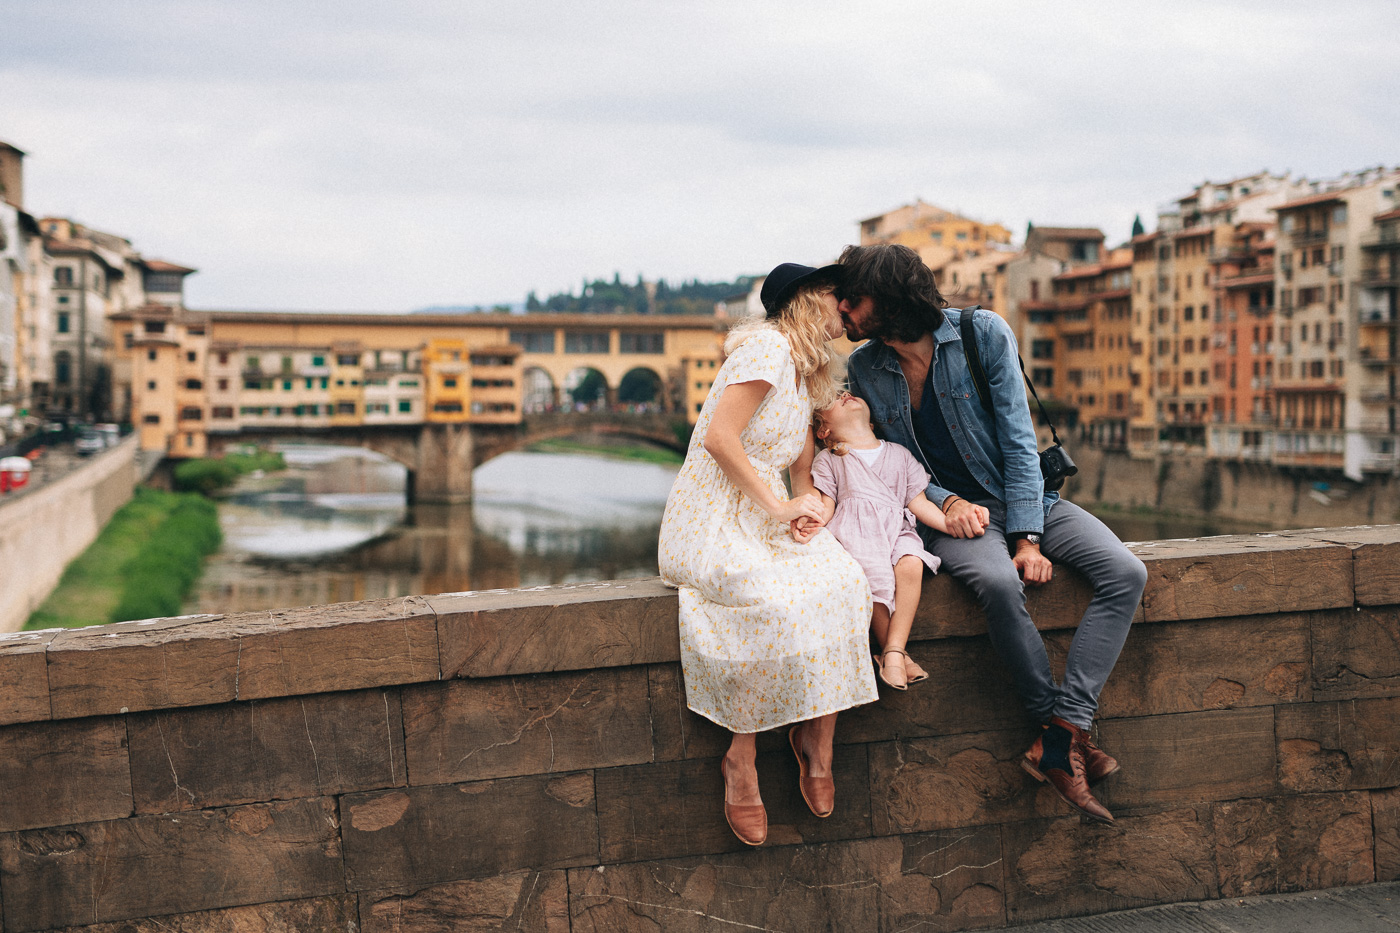 //euphoriawedding.com/wp-content/uploads/2019/11/Family-Photoshoot_Florence_WEB-145.jpg